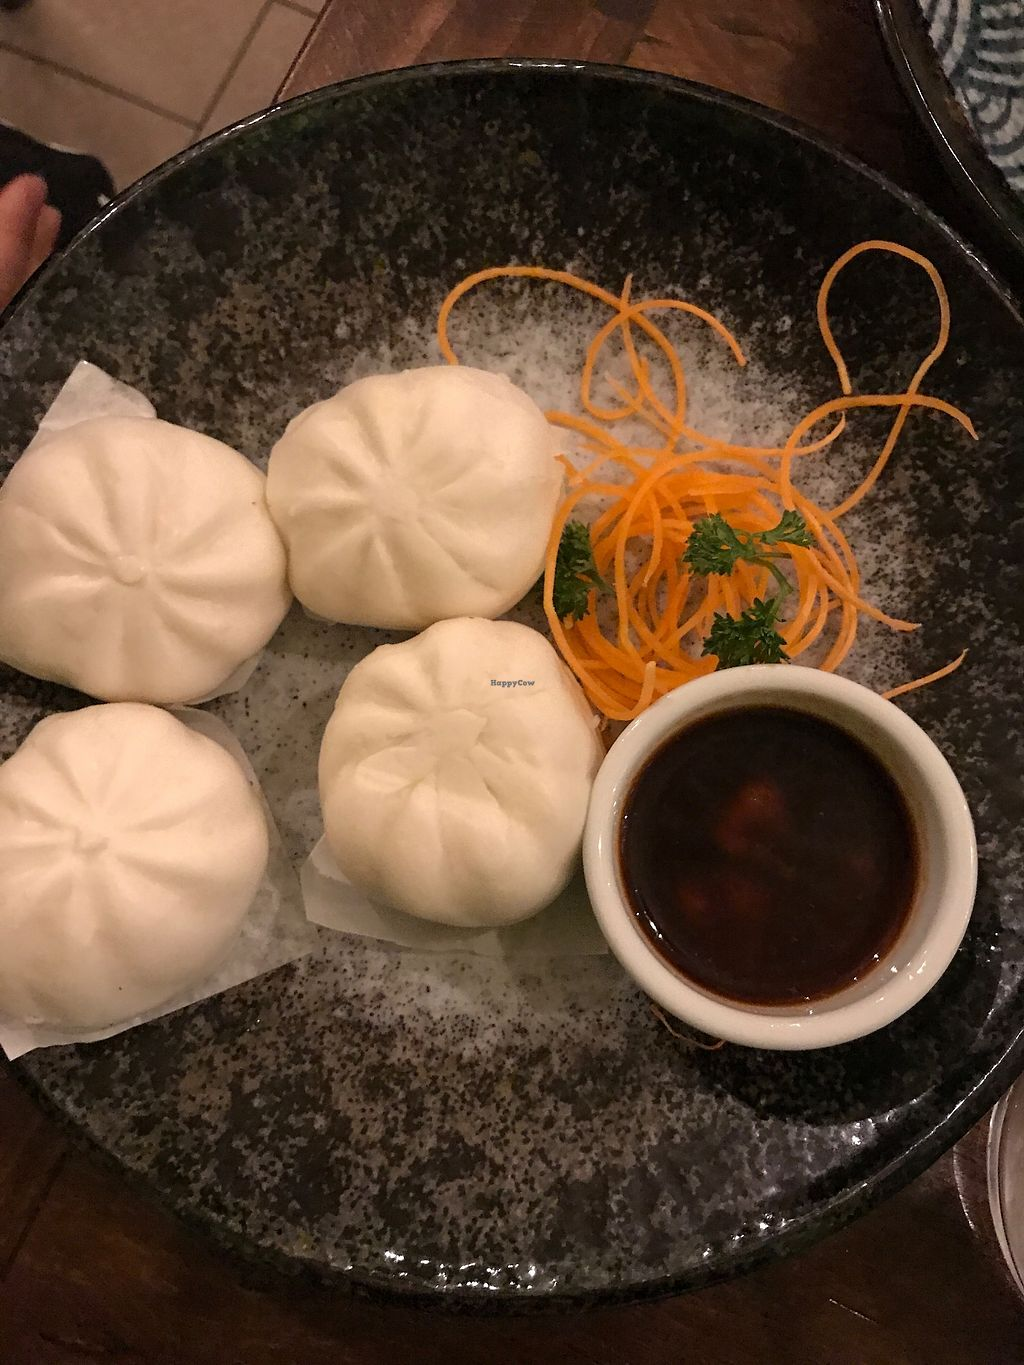 """Photo of Golden Lotus Vegan  by <a href=""""/members/profile/AmandaAttard"""">AmandaAttard</a> <br/>Steamed Dumplings <br/> July 14, 2017  - <a href='/contact/abuse/image/60395/280074'>Report</a>"""